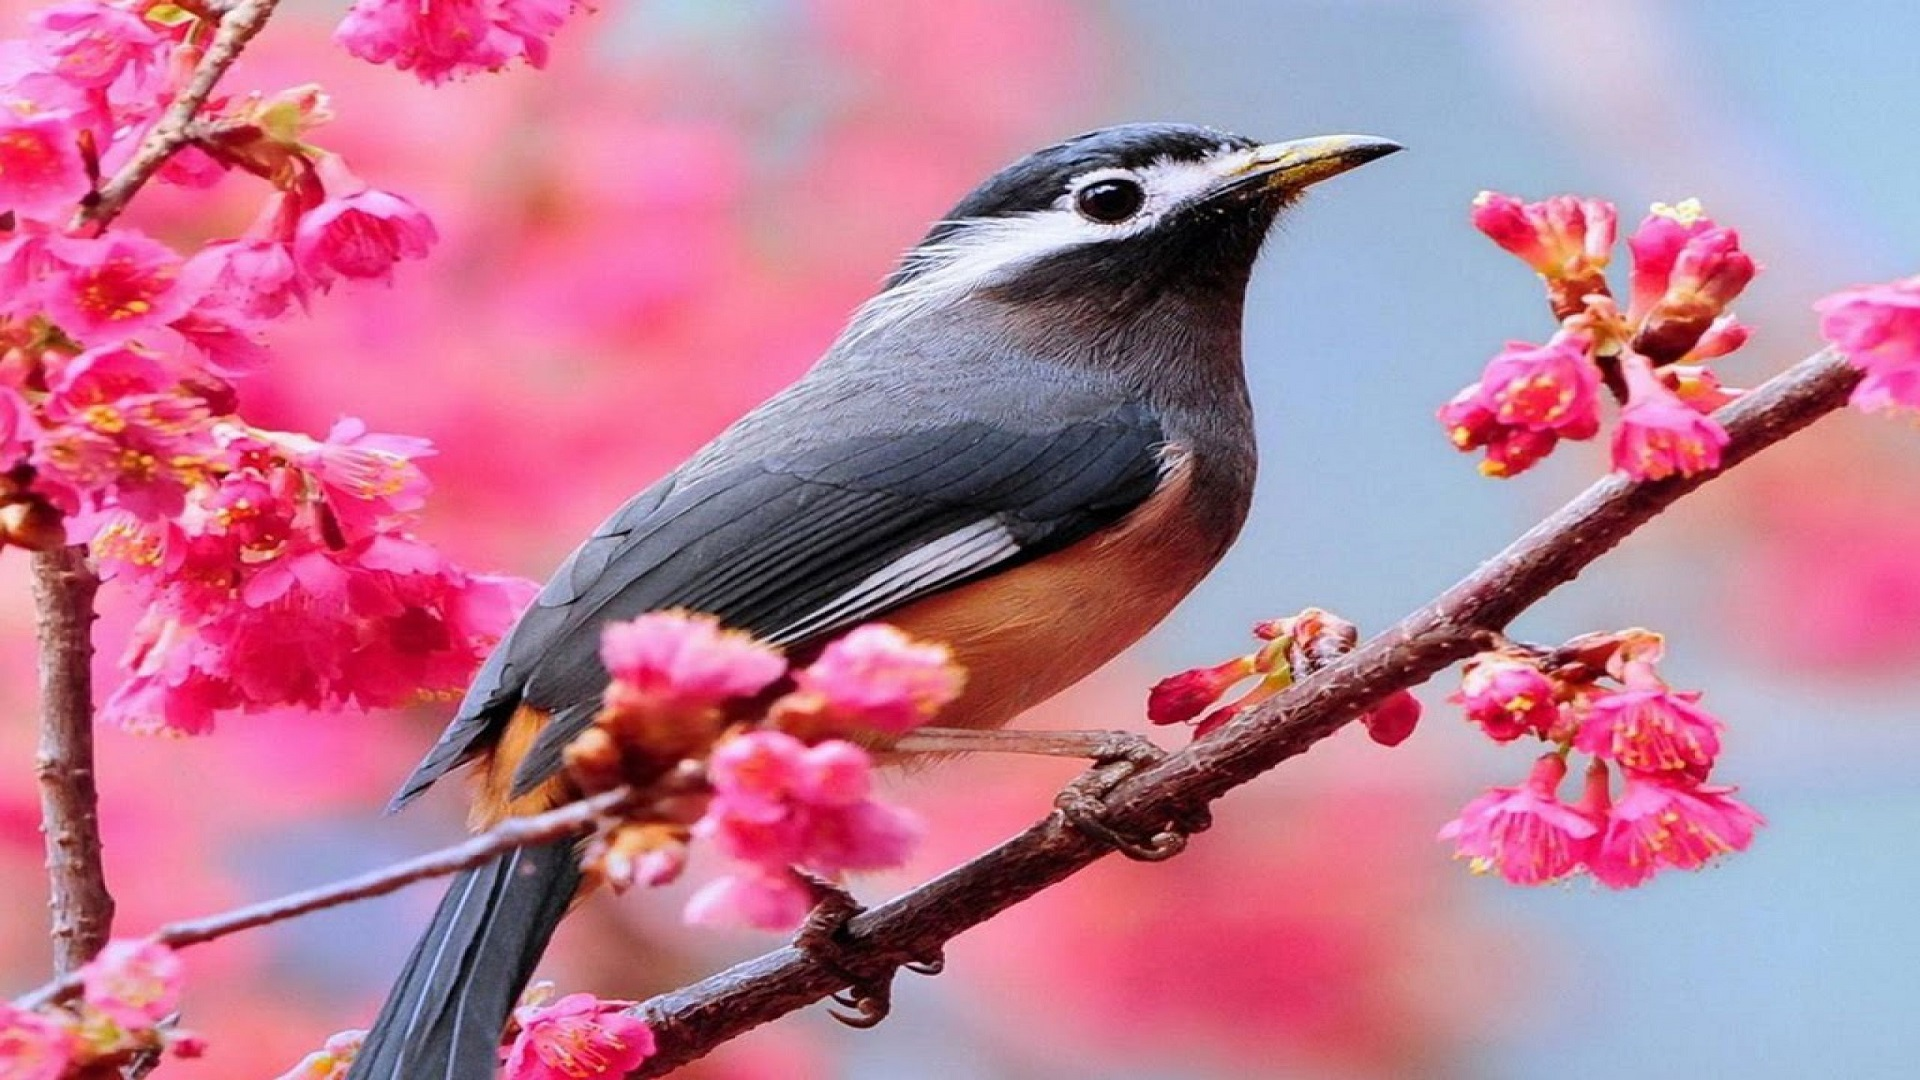 Hd Beautiful Bird Wallpapers Hd Wallpaper